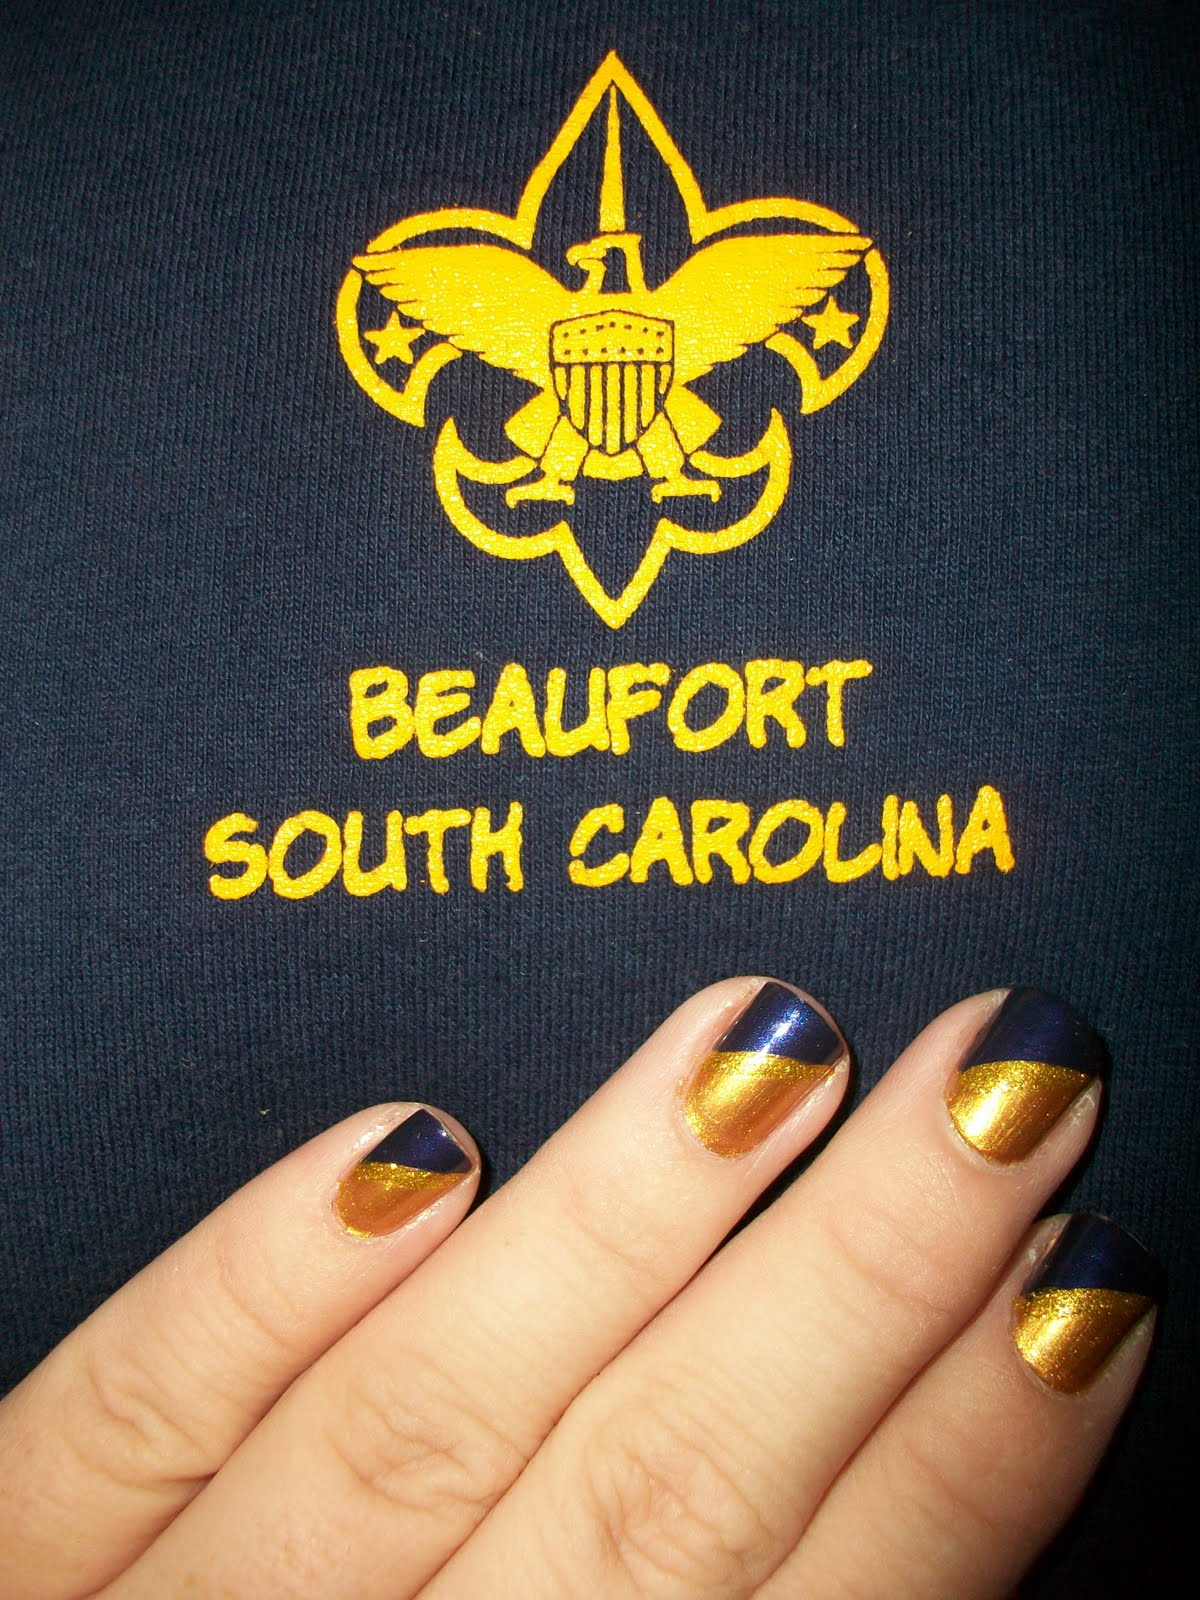 Stacey S Nails Cub Scout Mani